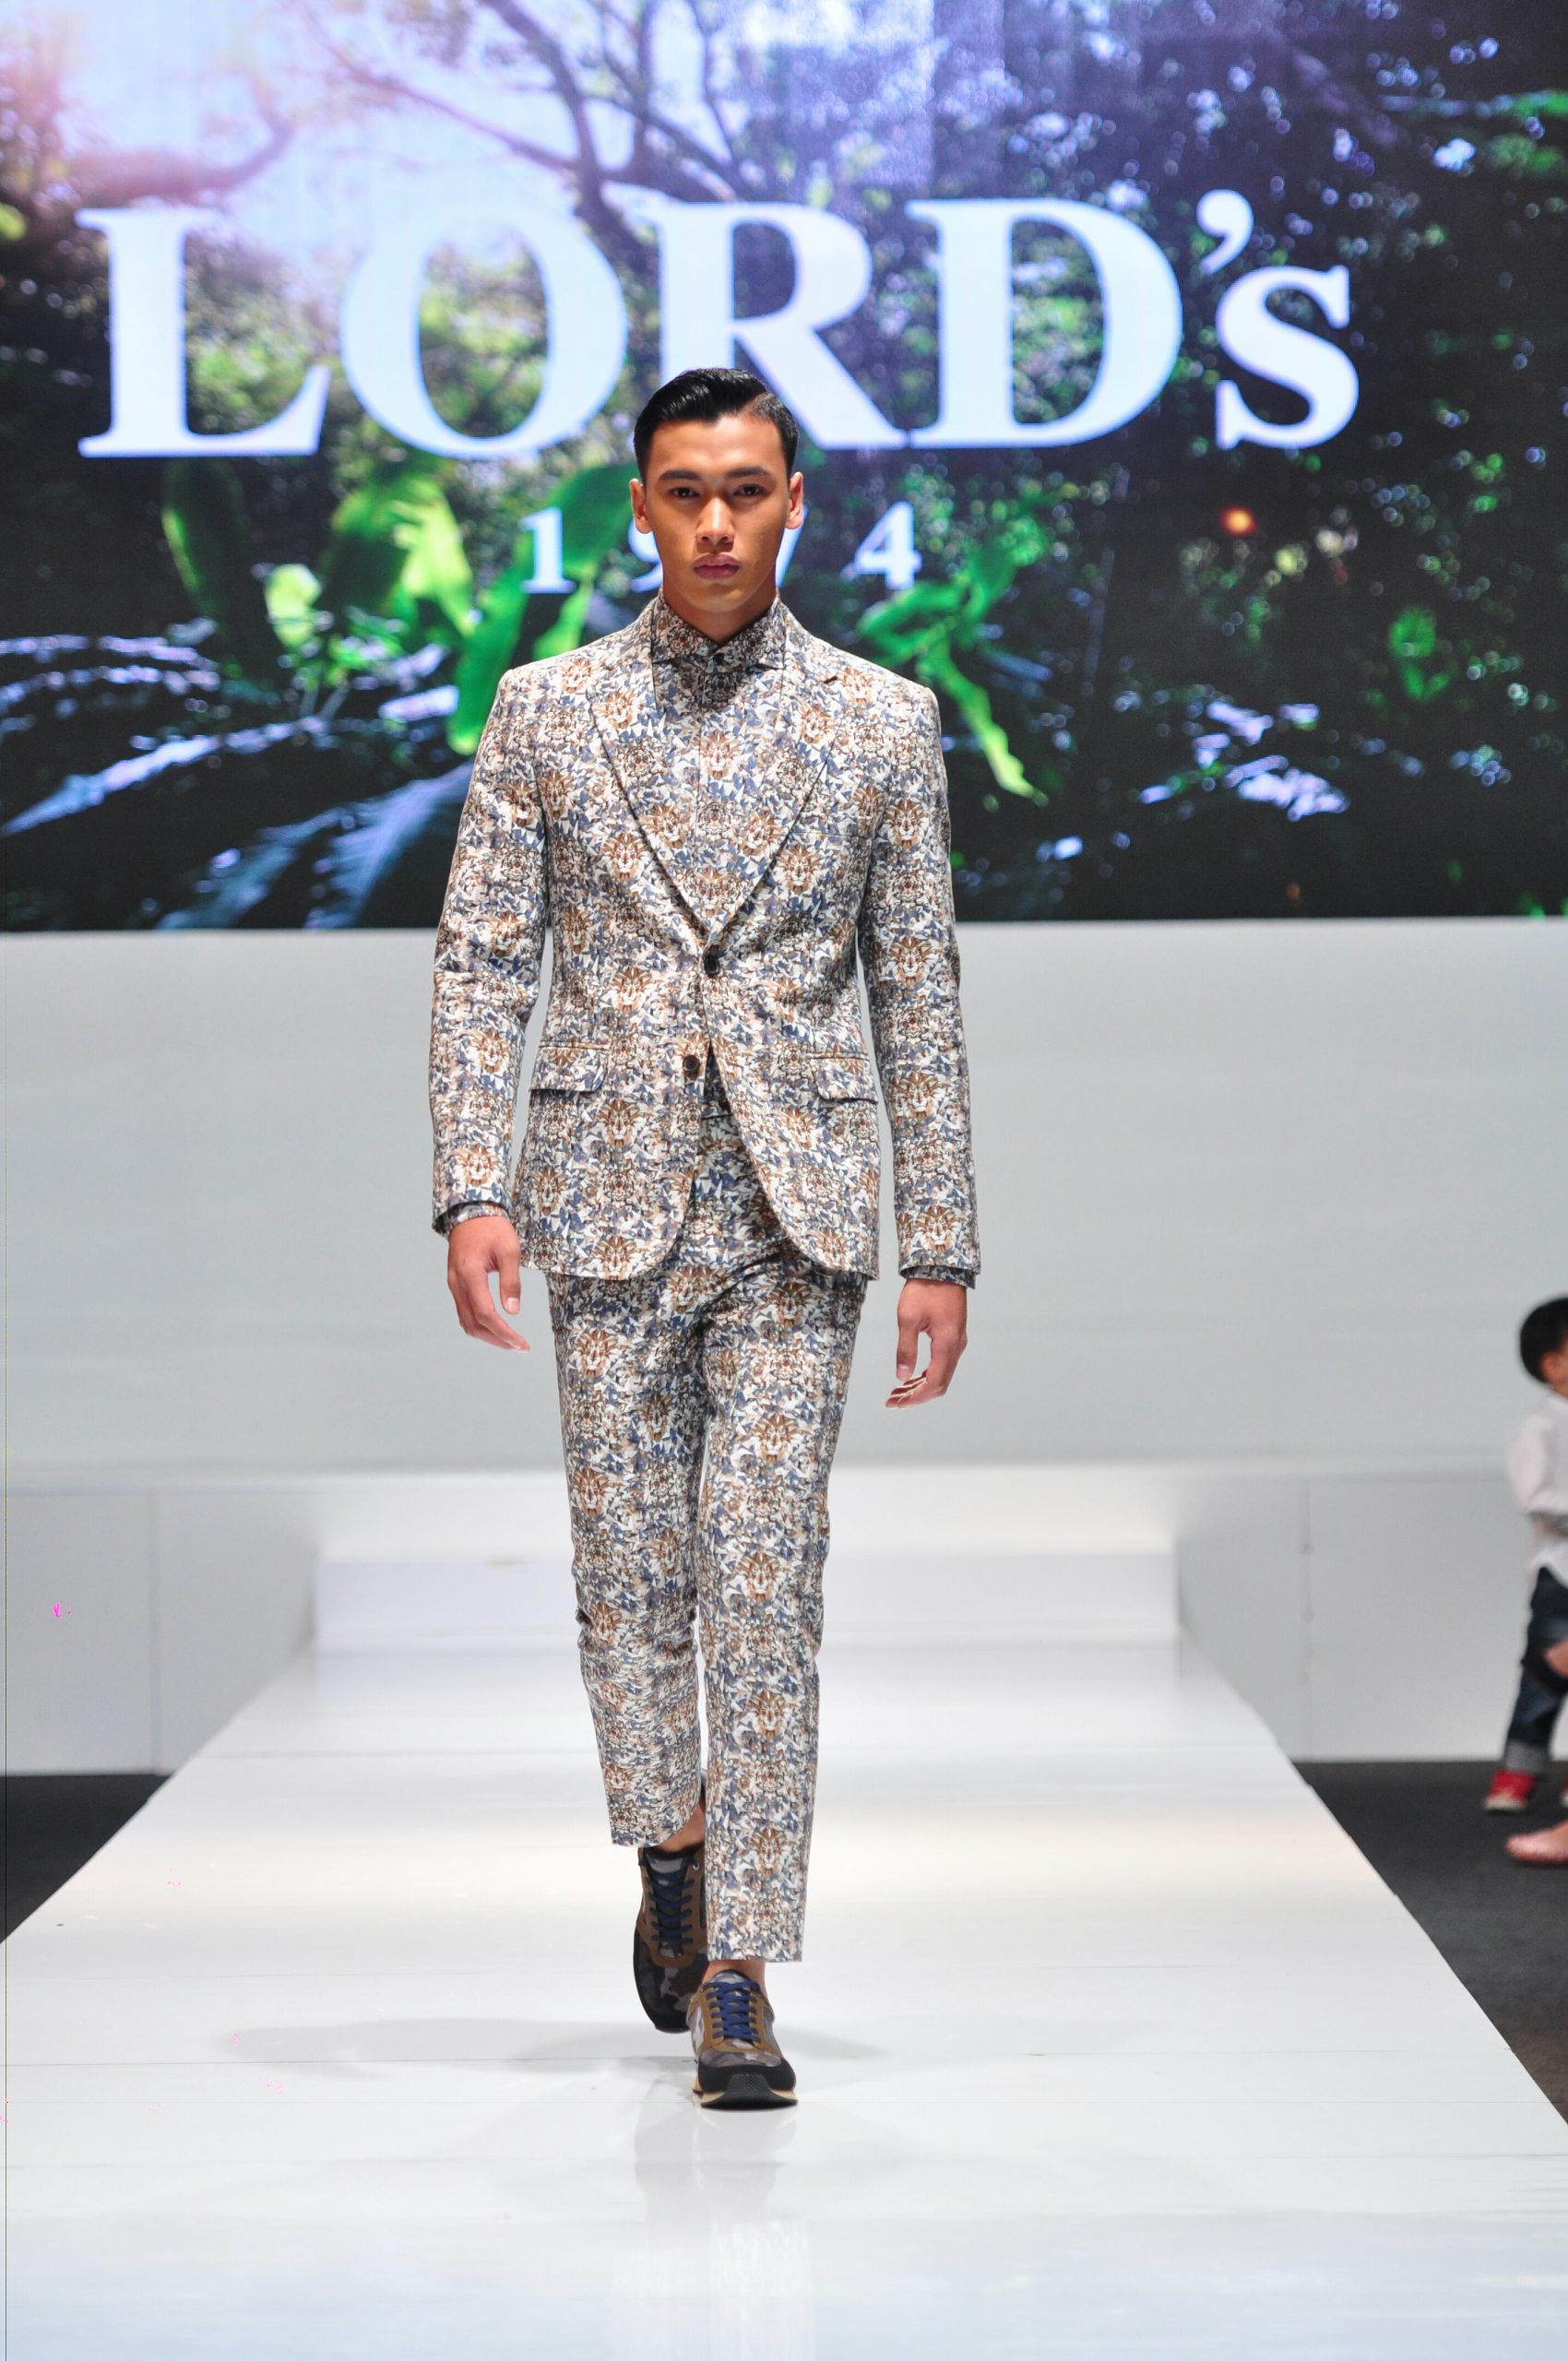 Pavilion Pitstop 2016 : LORD's 1974 Spring/Summer 2017 – Jungle Fever